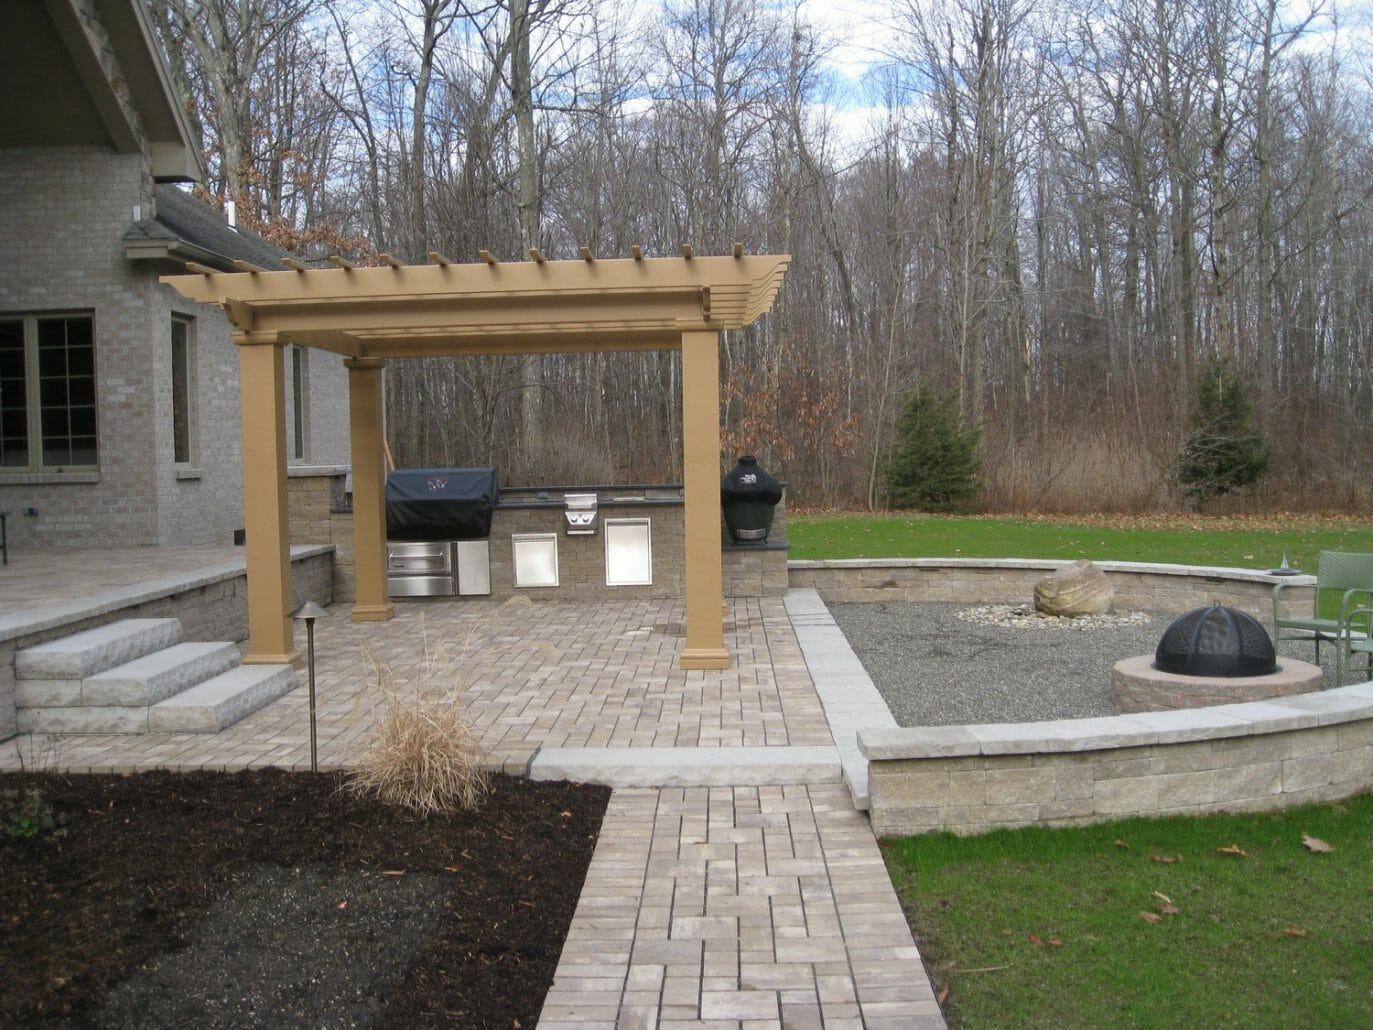 Wynantskill NY outdoor kitchen design 1373x1030 - Landscape Plan Installation and Project Management